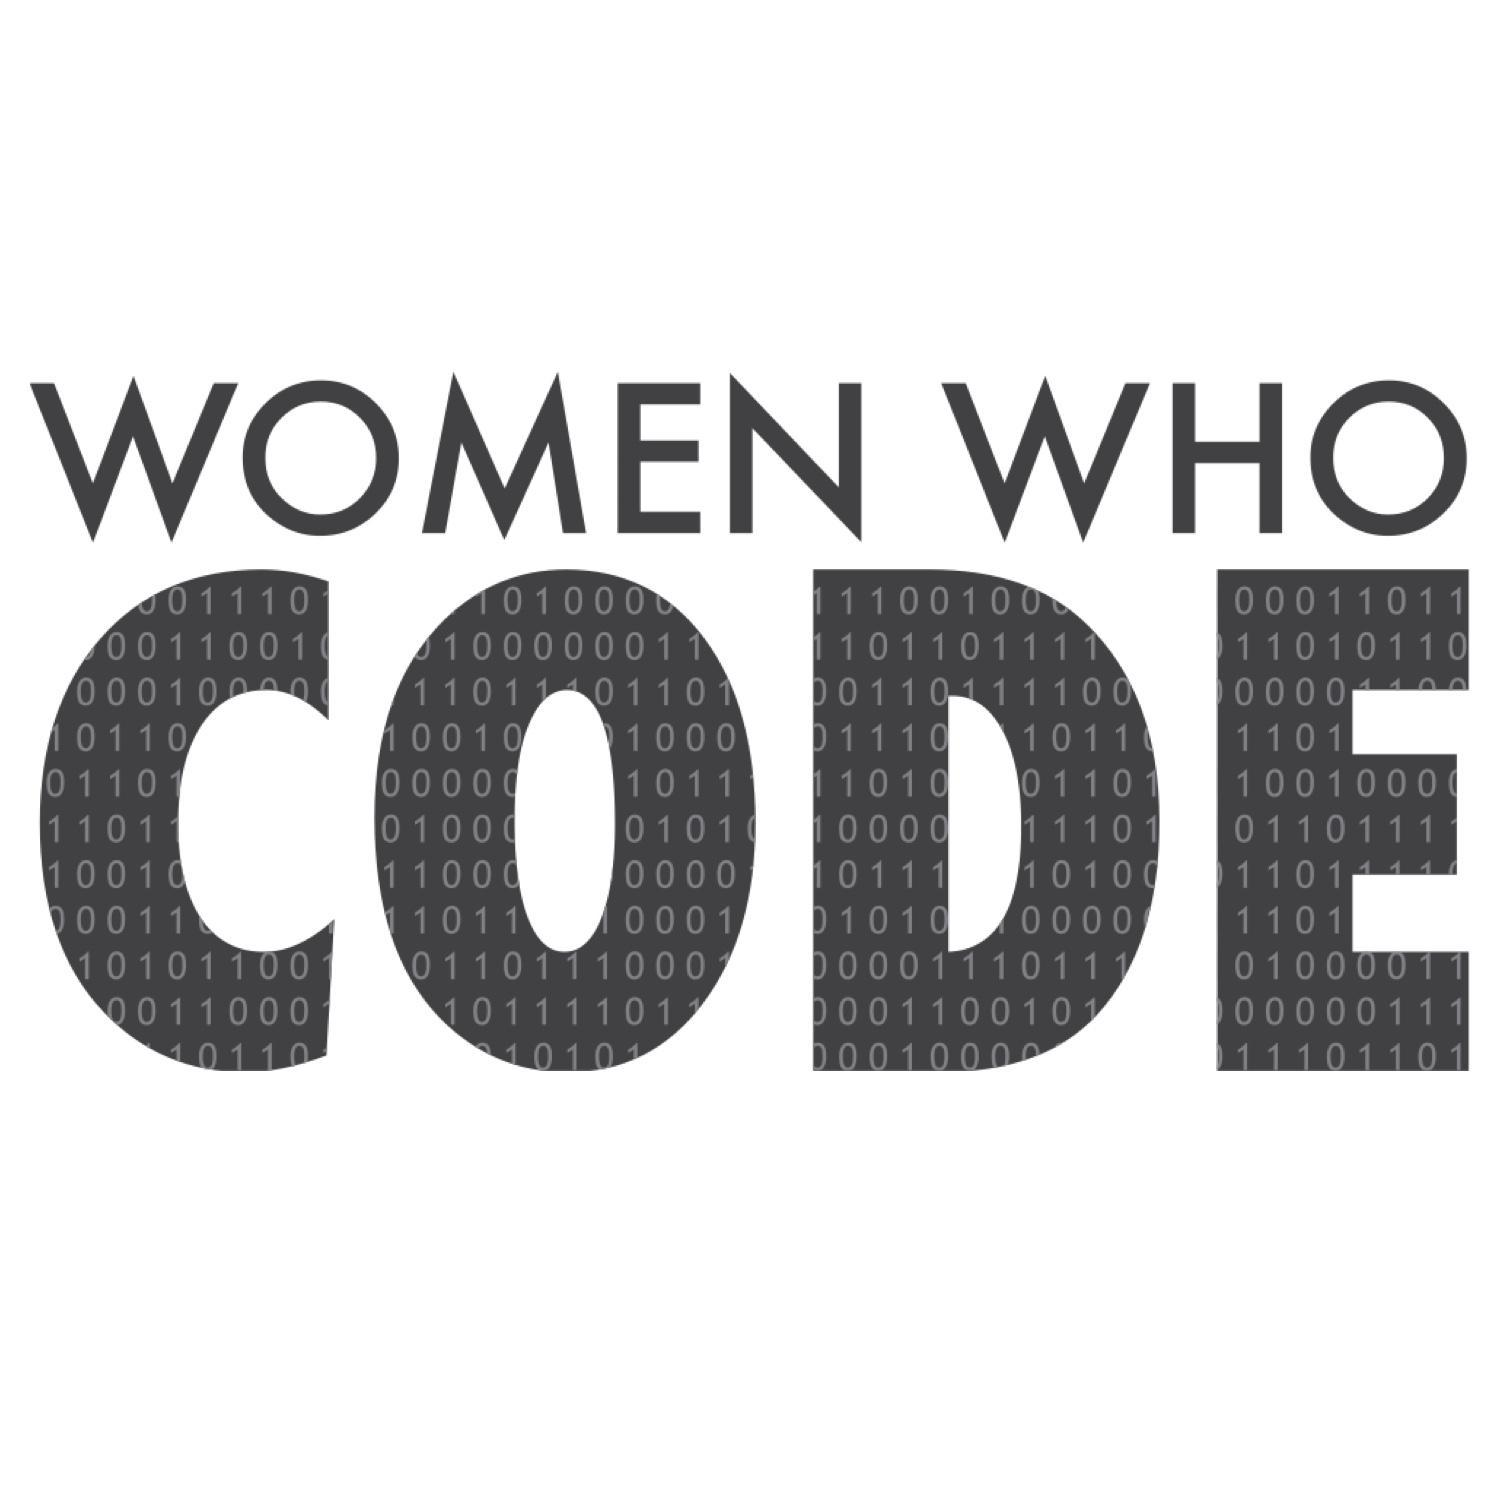 Women Who Code One Year Celebration featuring Michelle Lee